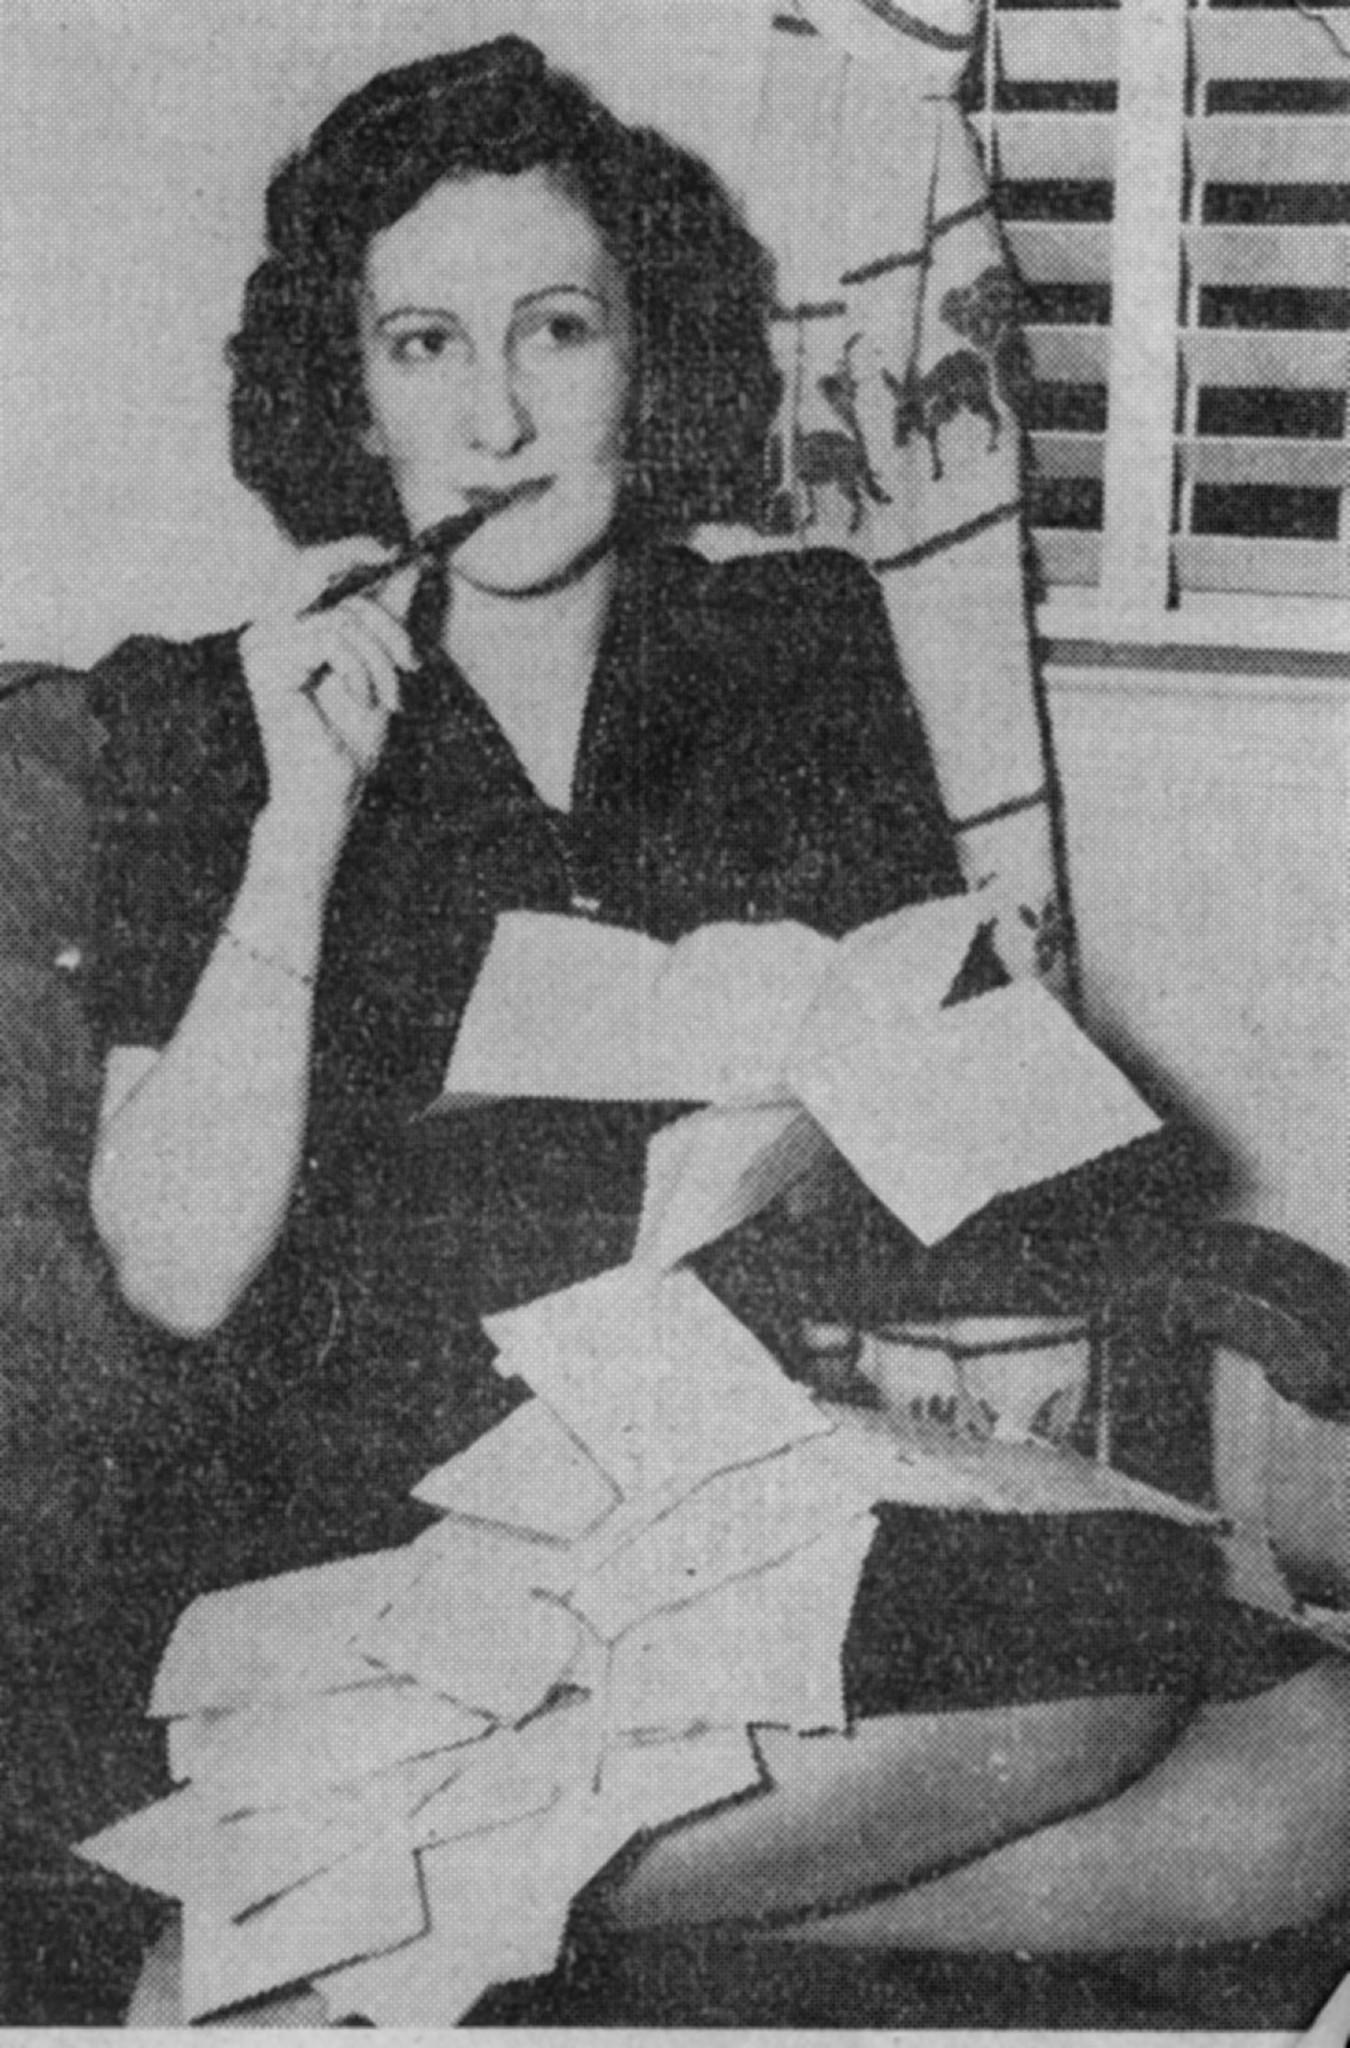 The late Norma Sestero as she penned her Glastonbury Newsletters. The Glastonbury correspondent for the Hartford Times sent newsletters to servicemen and woman serving in World War Two.